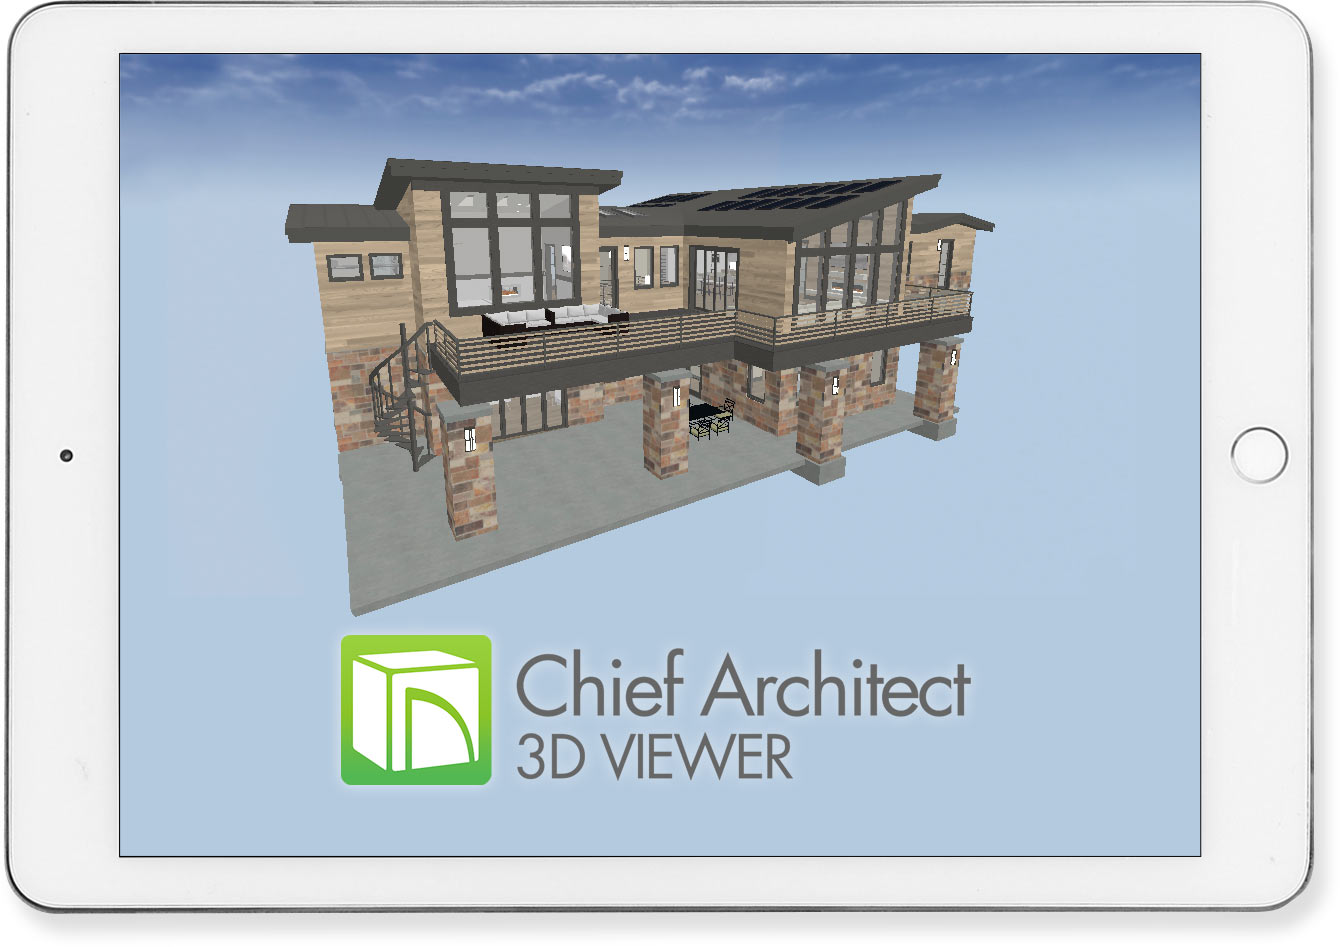 Bachelor View 3D Viewer model.